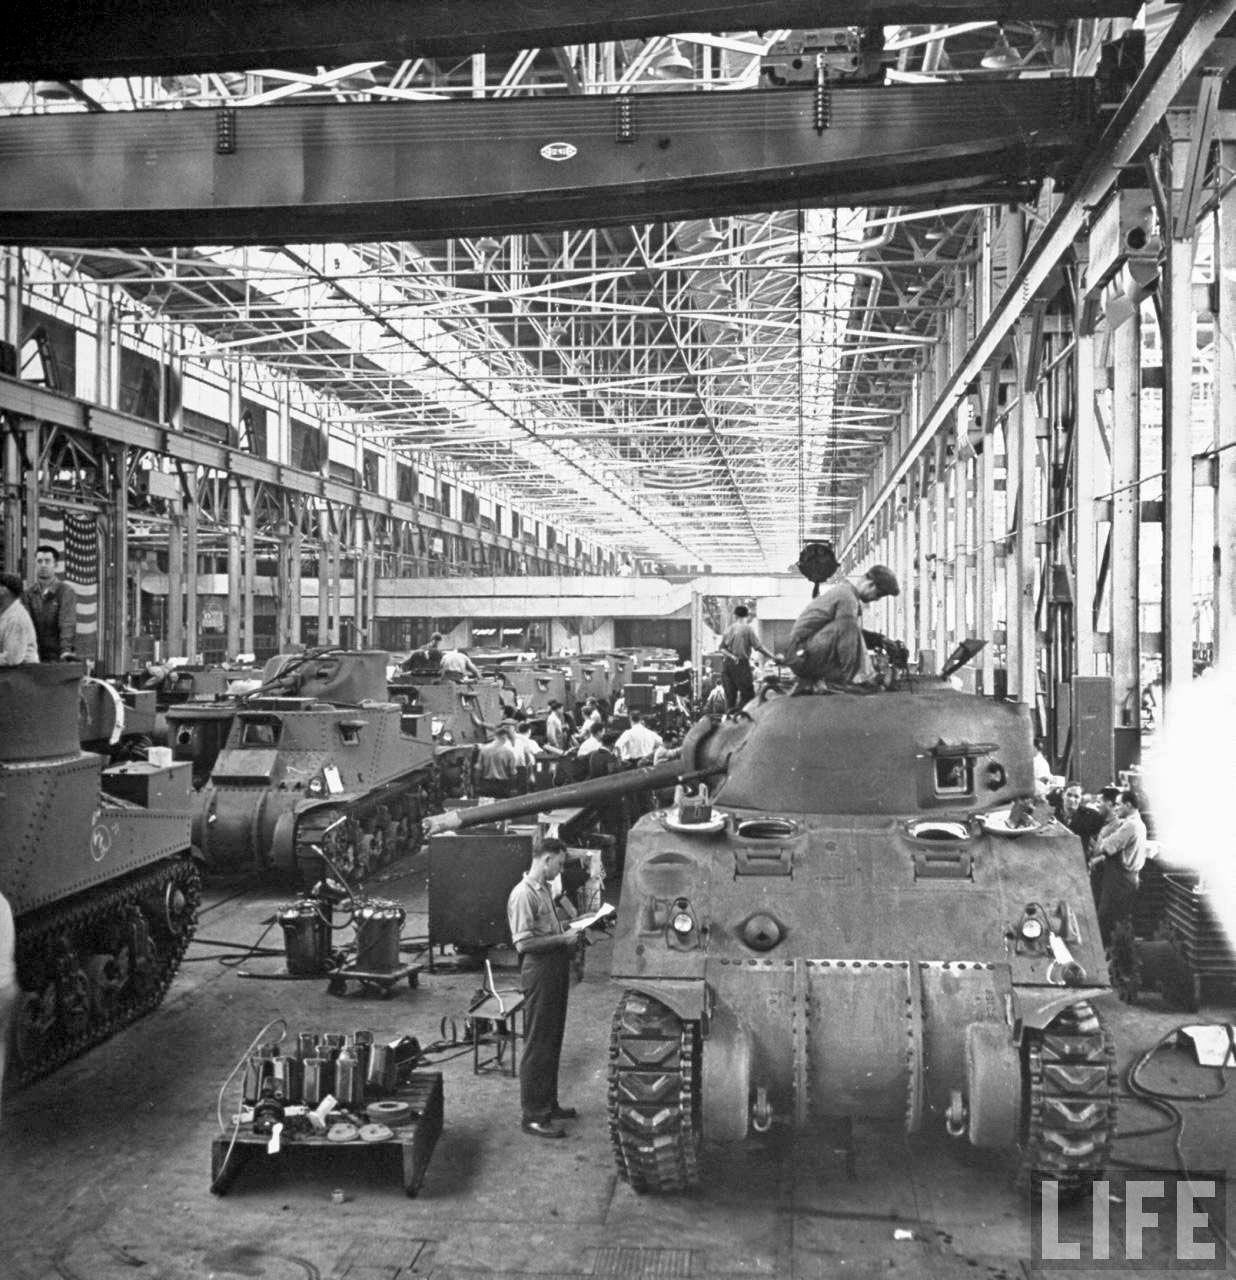 The Arsenal of Democracy: Detroit car makers produce for World War II, 1942